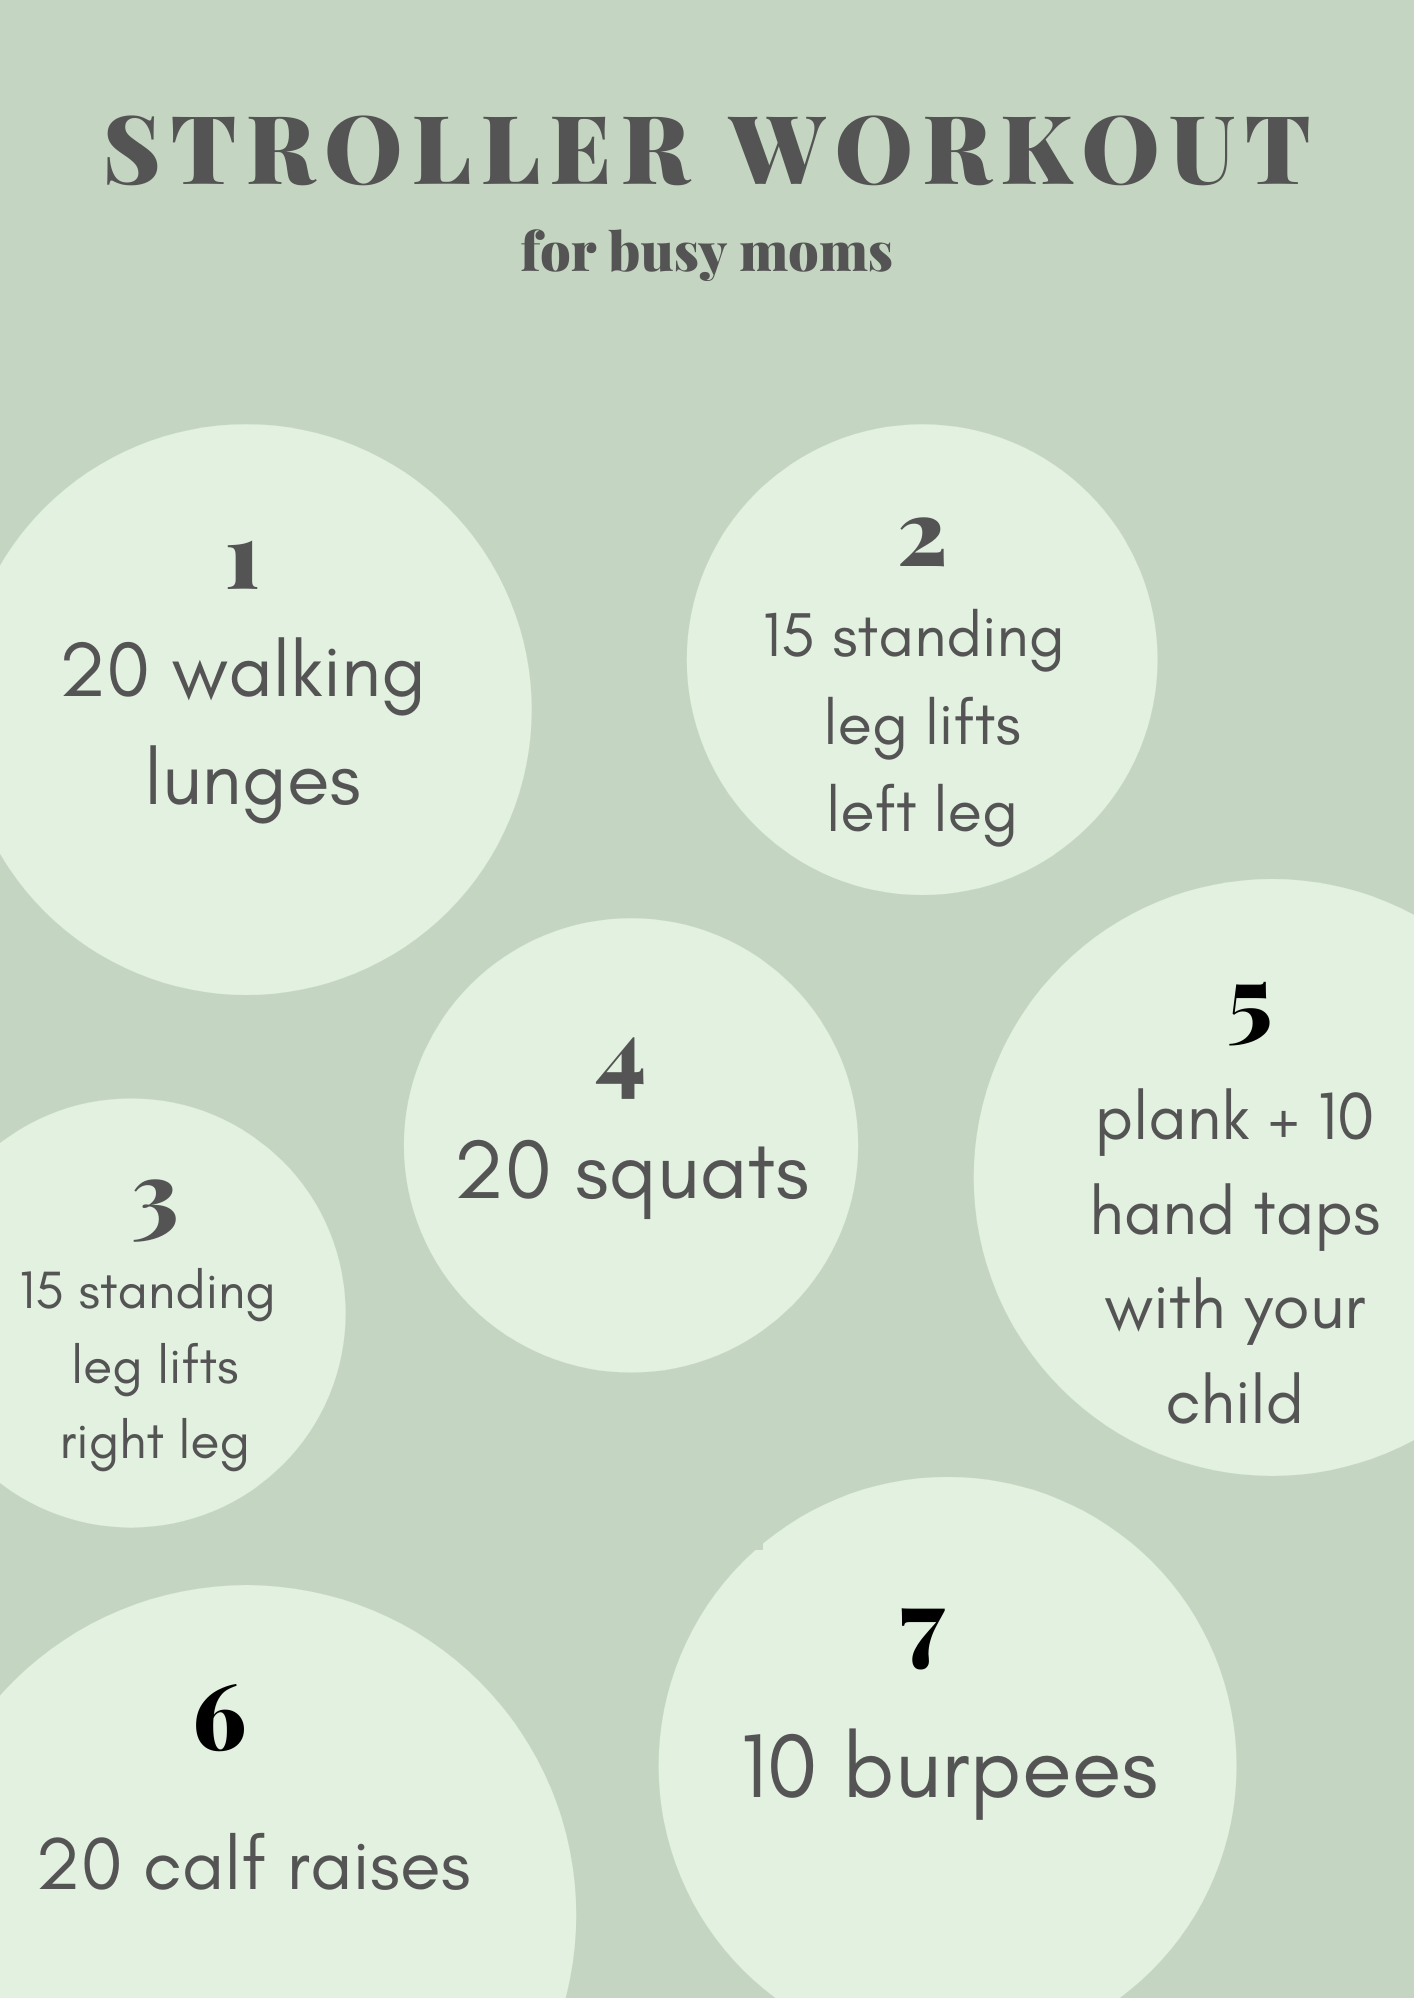 Stroller Workout for Busy Moms